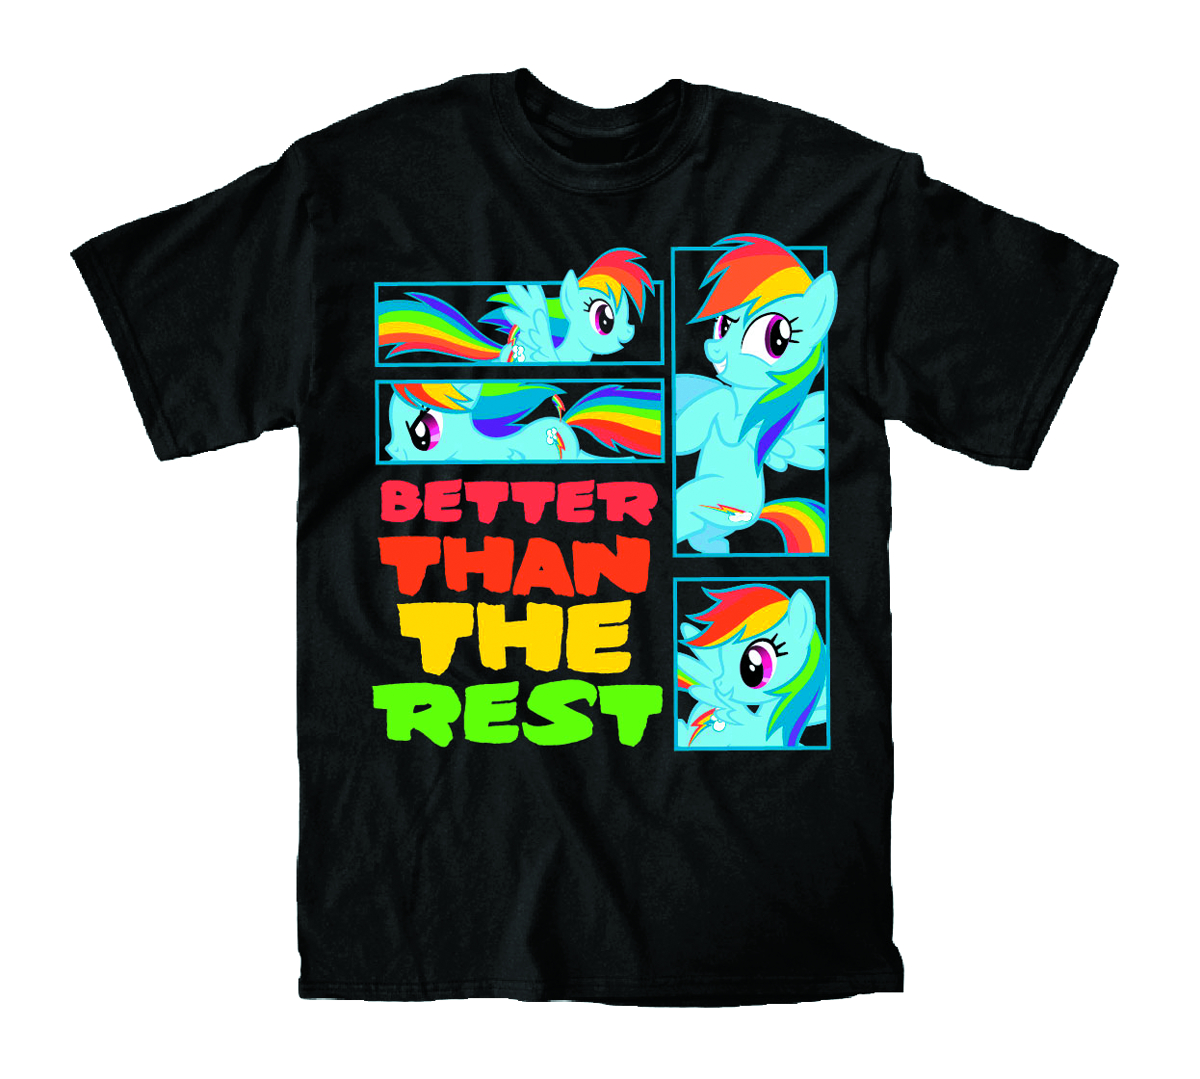 MY LITTLE PONY BETTER THAN THE REST BLK T/S SM